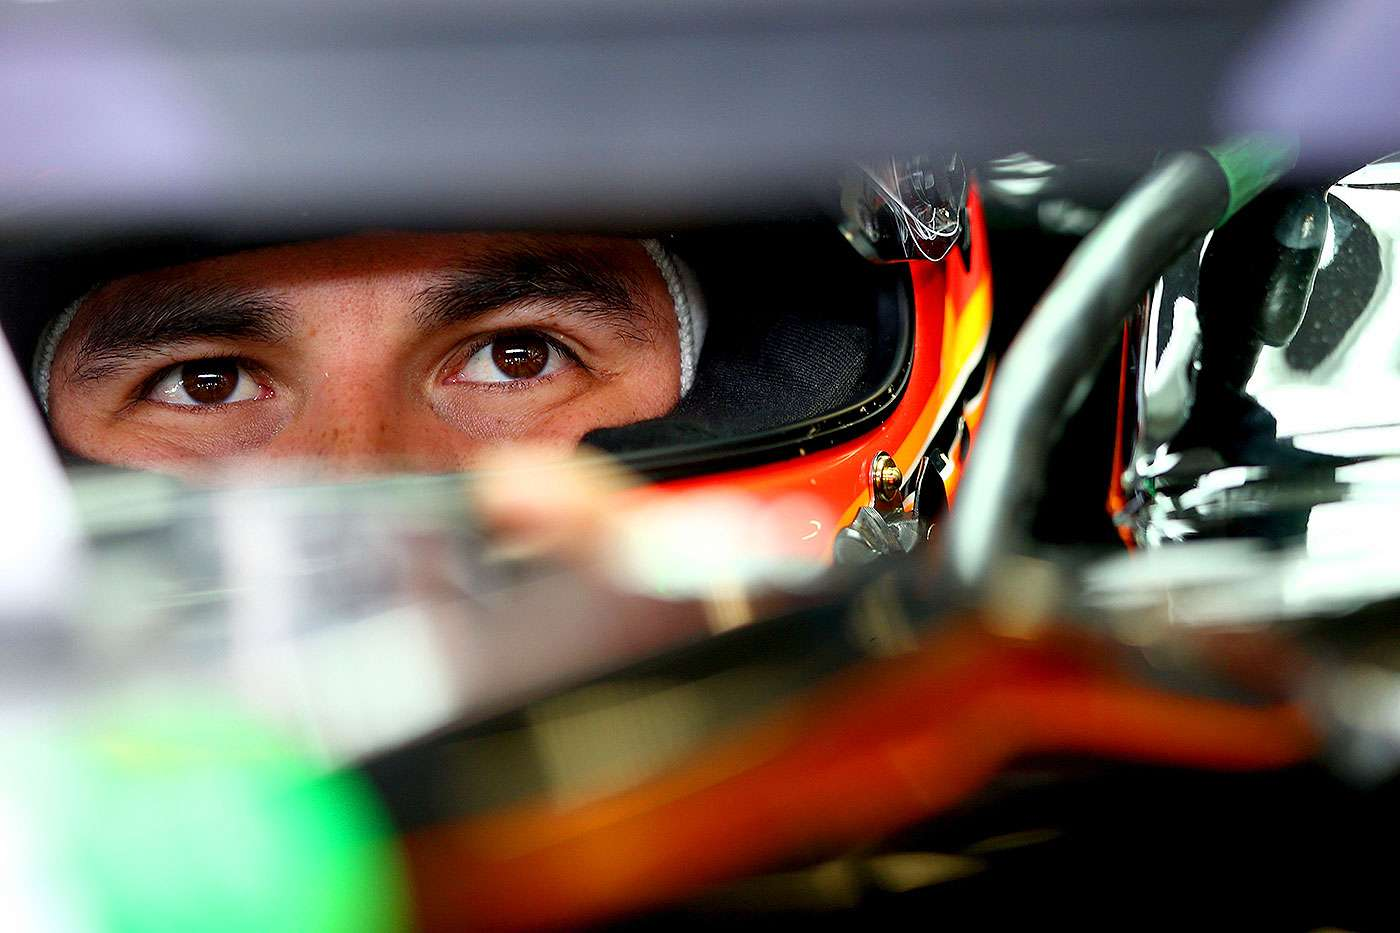 Sergio Pérez, piloto mexicano de la escudería Force India de Fórmula Uno. Foto: Getty Images